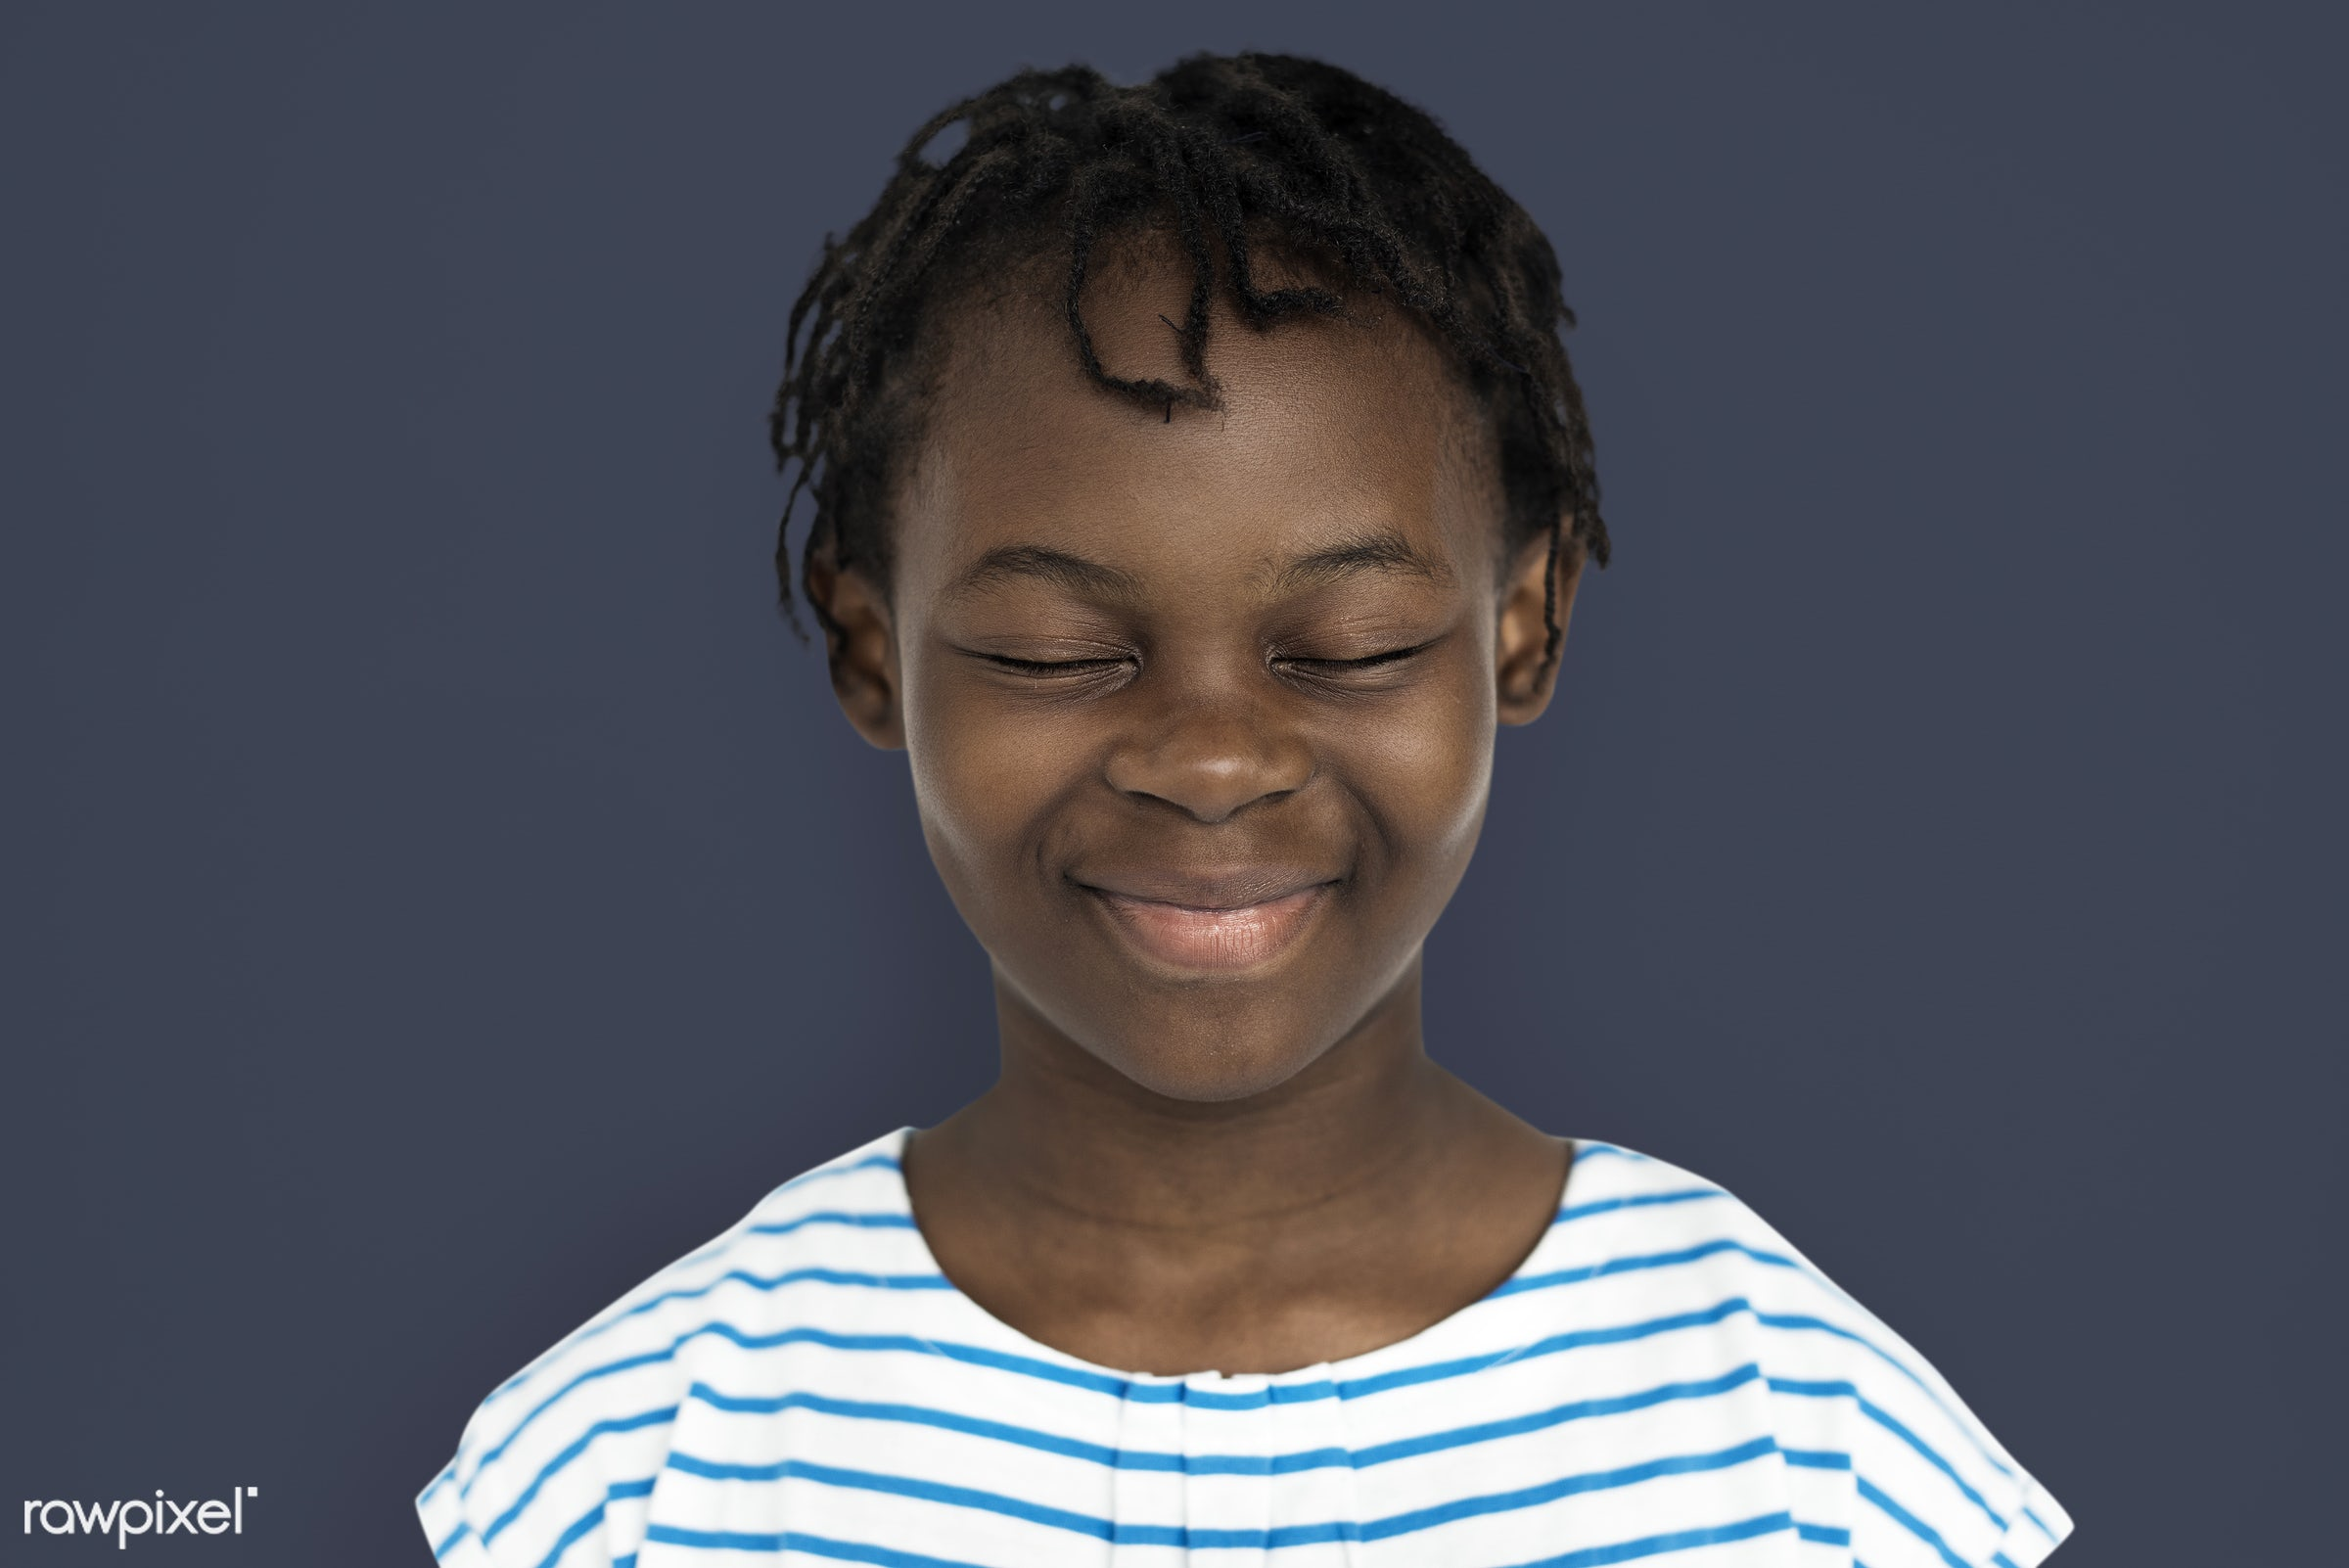 studio, expression, person, people, kid, childhood, smile, cheerful, smiling, african descent, happiness, portrait, emotion...